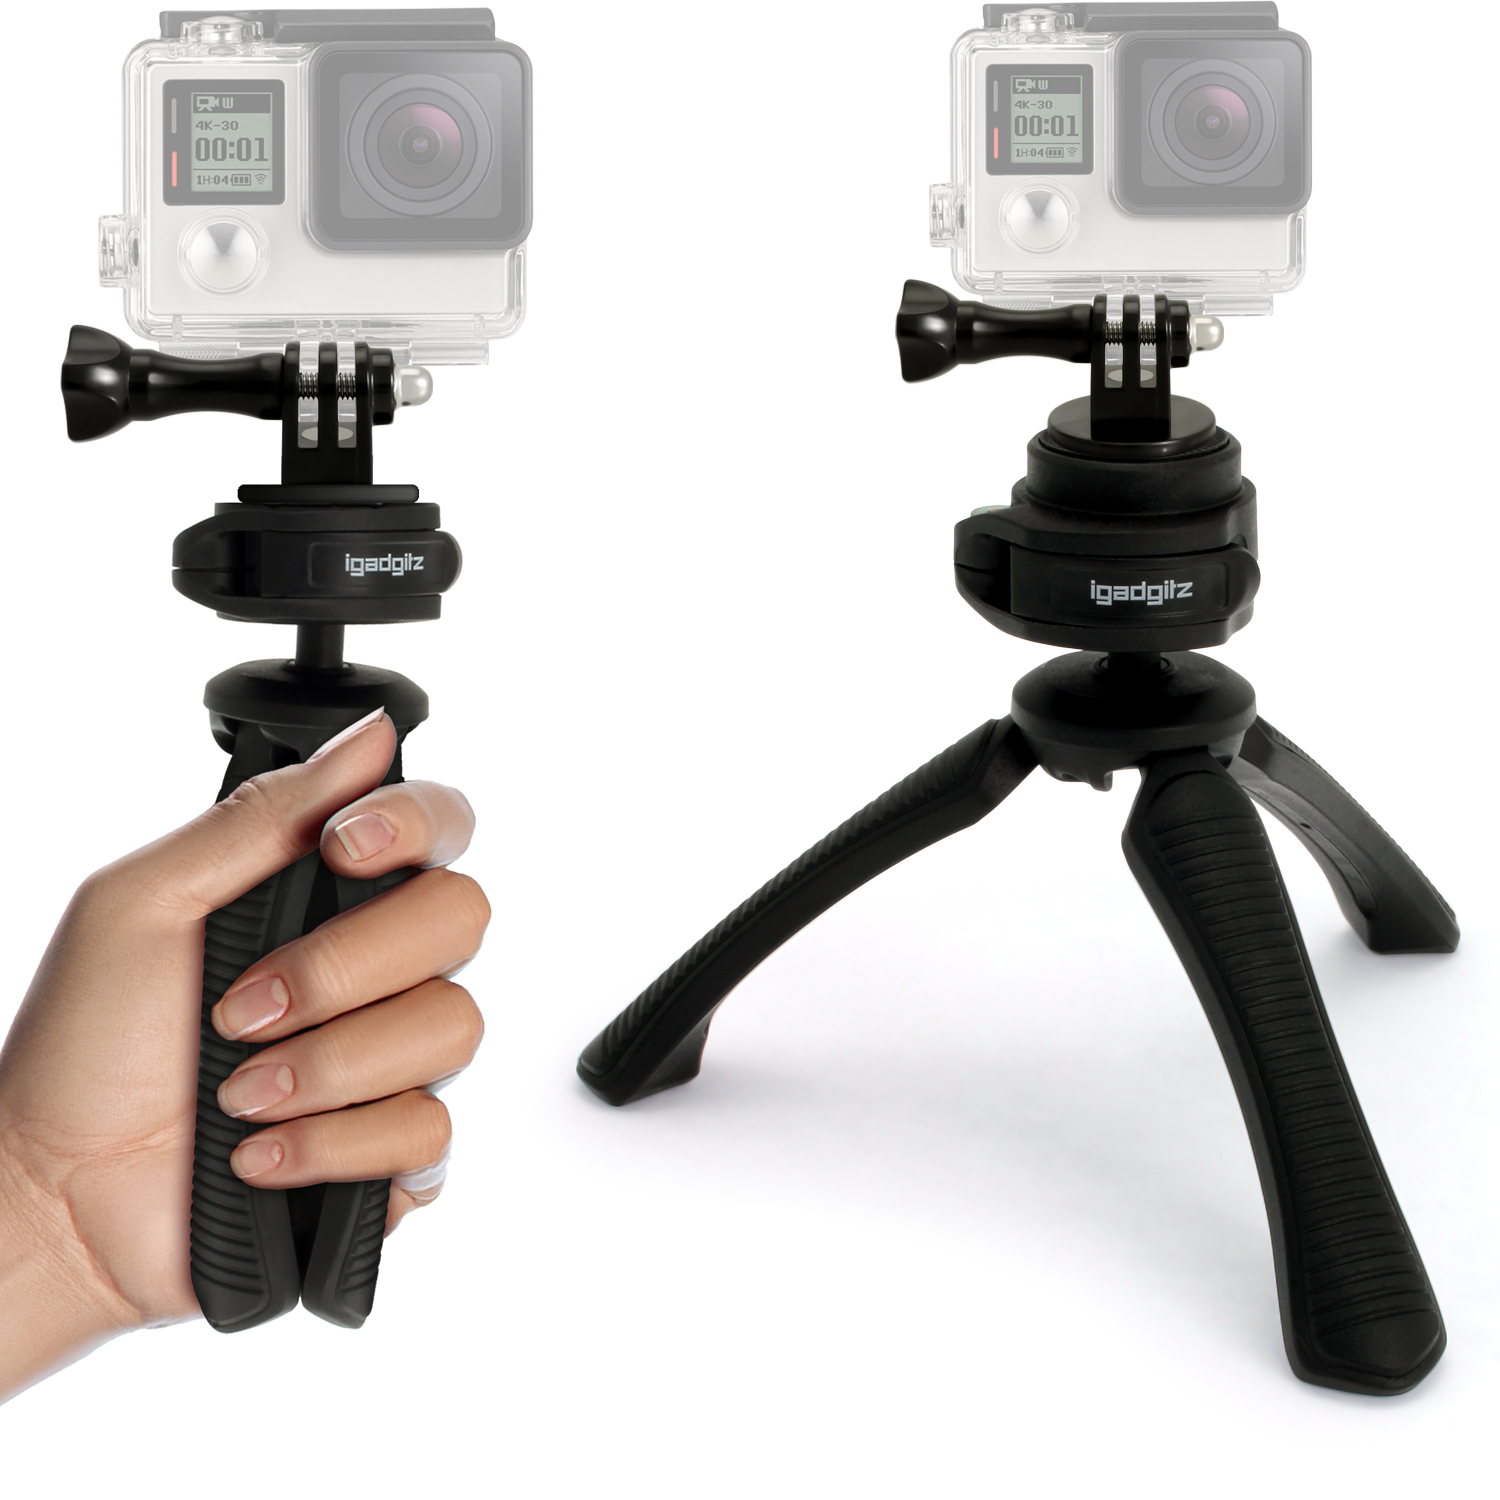 Mini Table Top Stand Tripod Adaptor Mount Go Pro Hero Session 5 4 3 3 2 1 Ebay